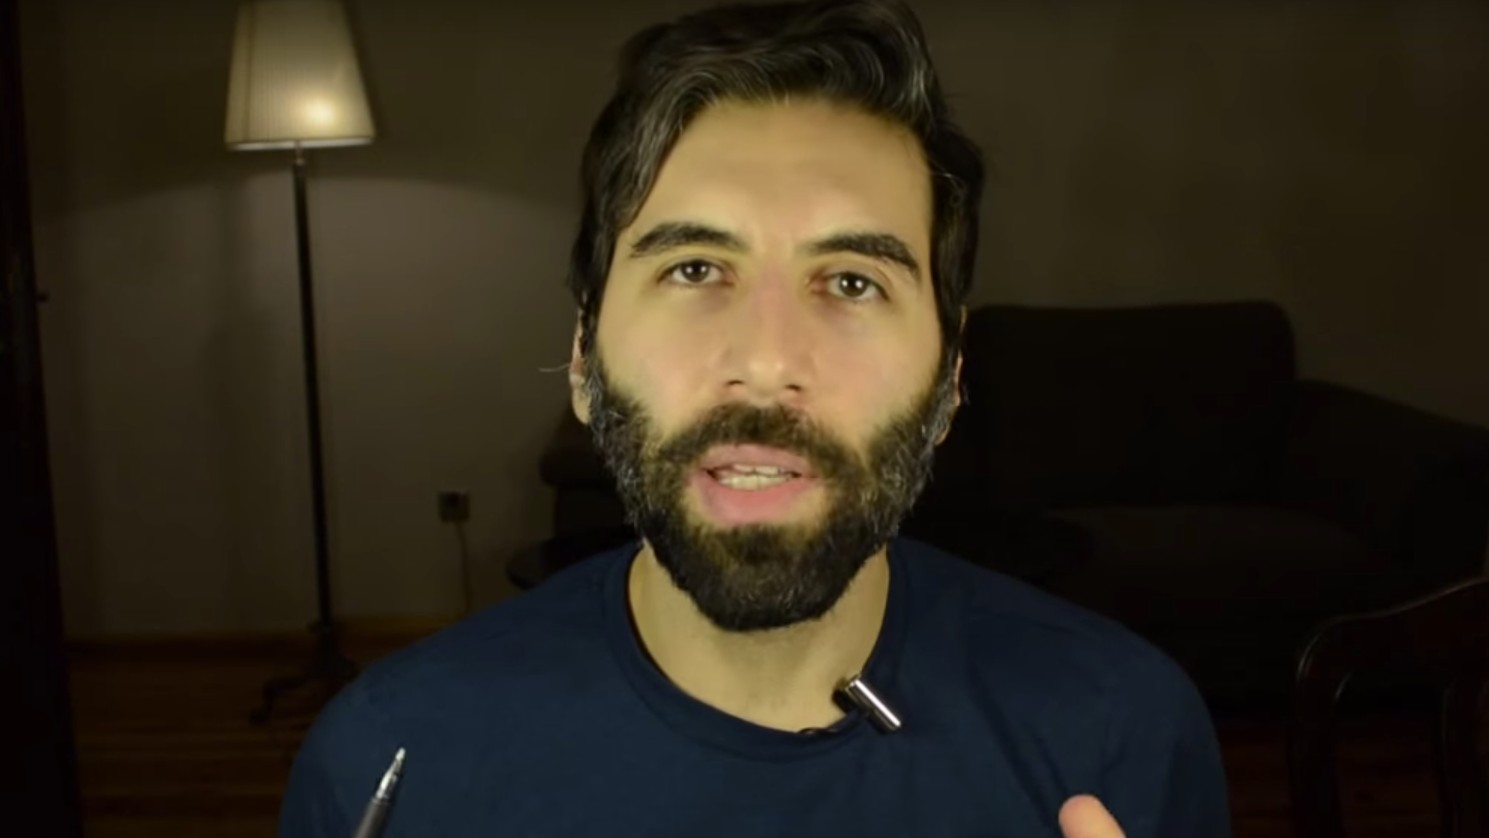 Roosh V Canceled His Male Pride Meetup But Still Got What He Wanted